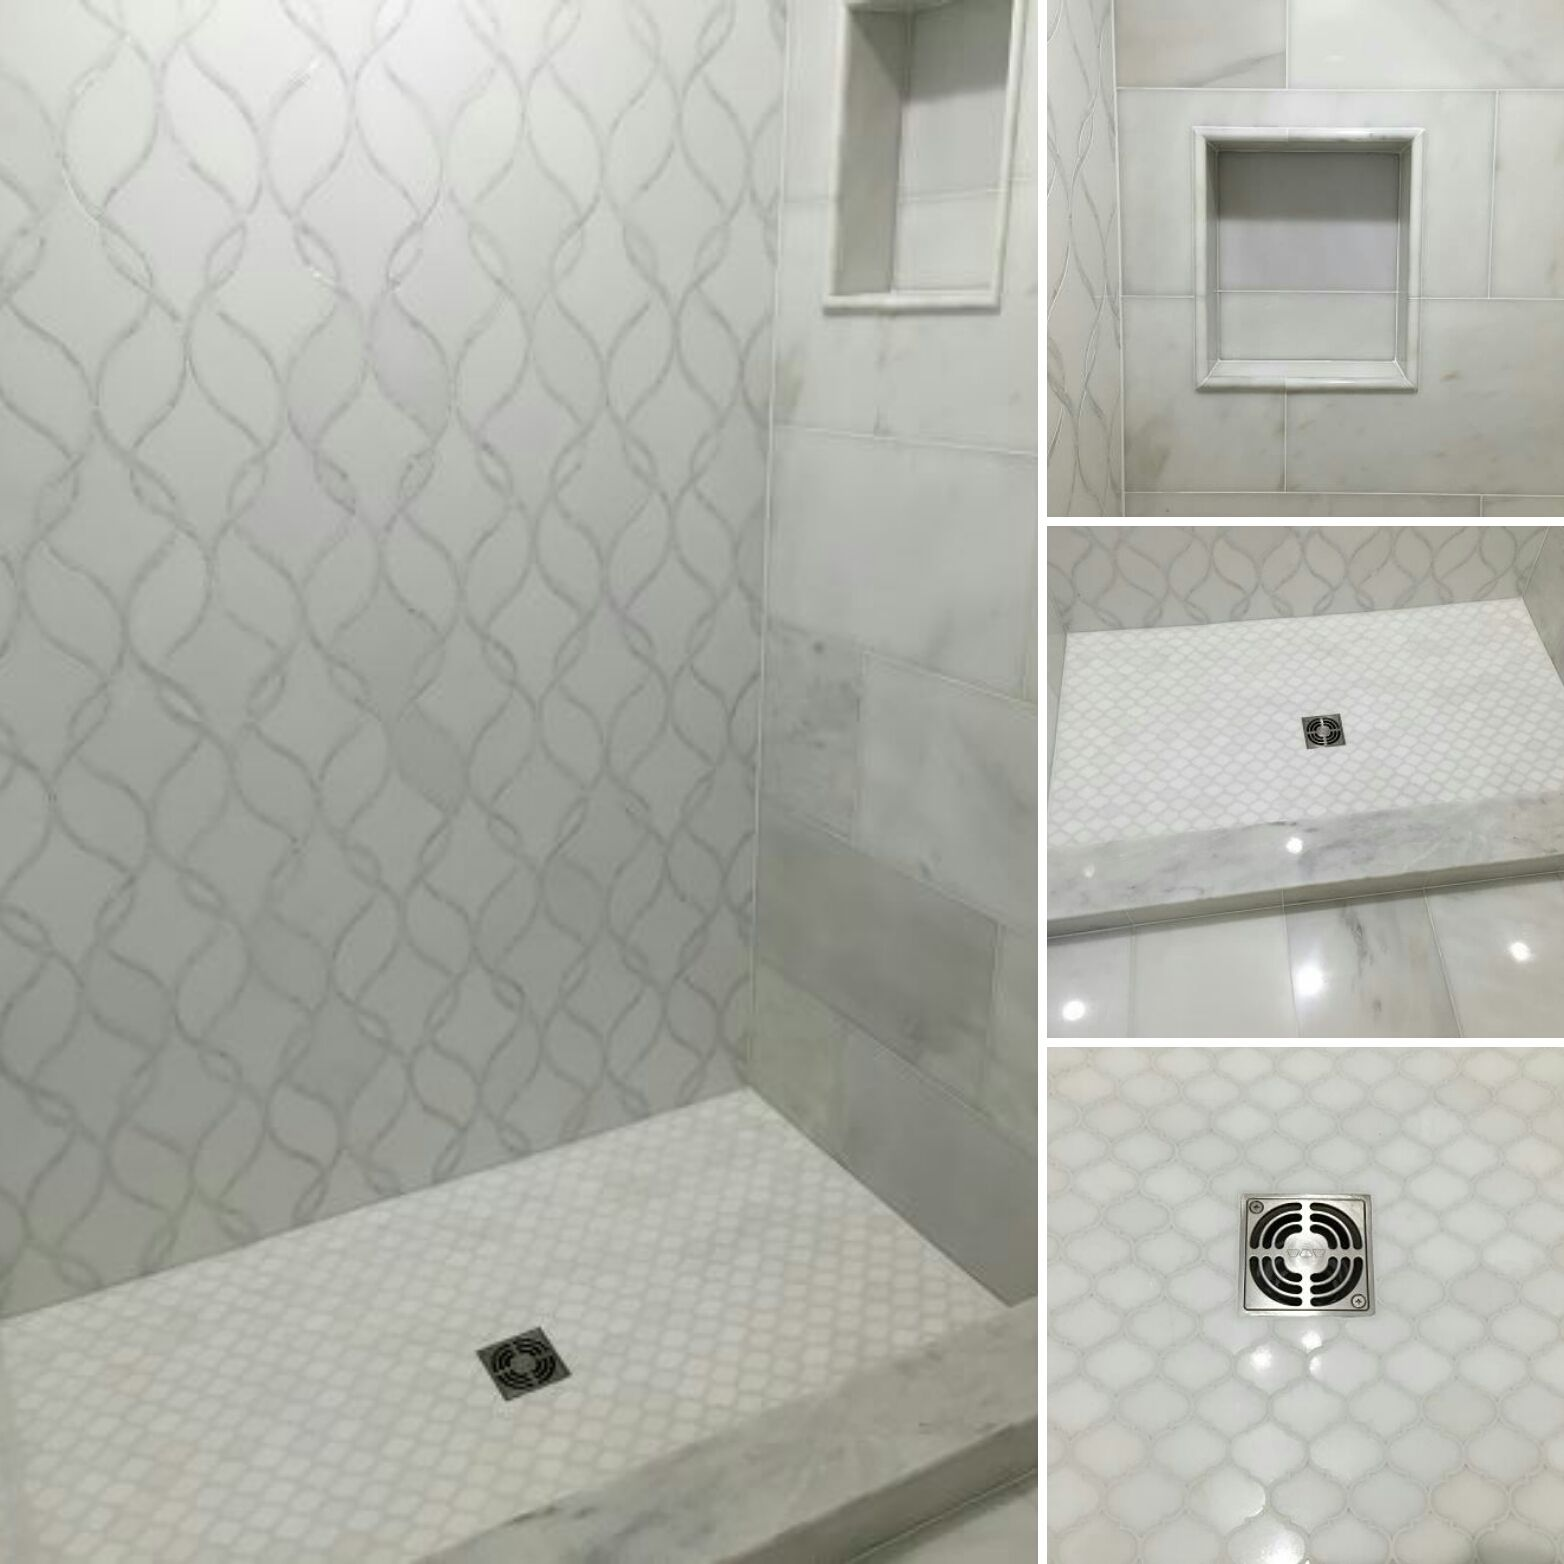 Artistic Tile I Claridges Mosaic In Thos And Rivershell On Back Wall Pacific White Field With Shower Niche Arabesque Etoile Waterjet